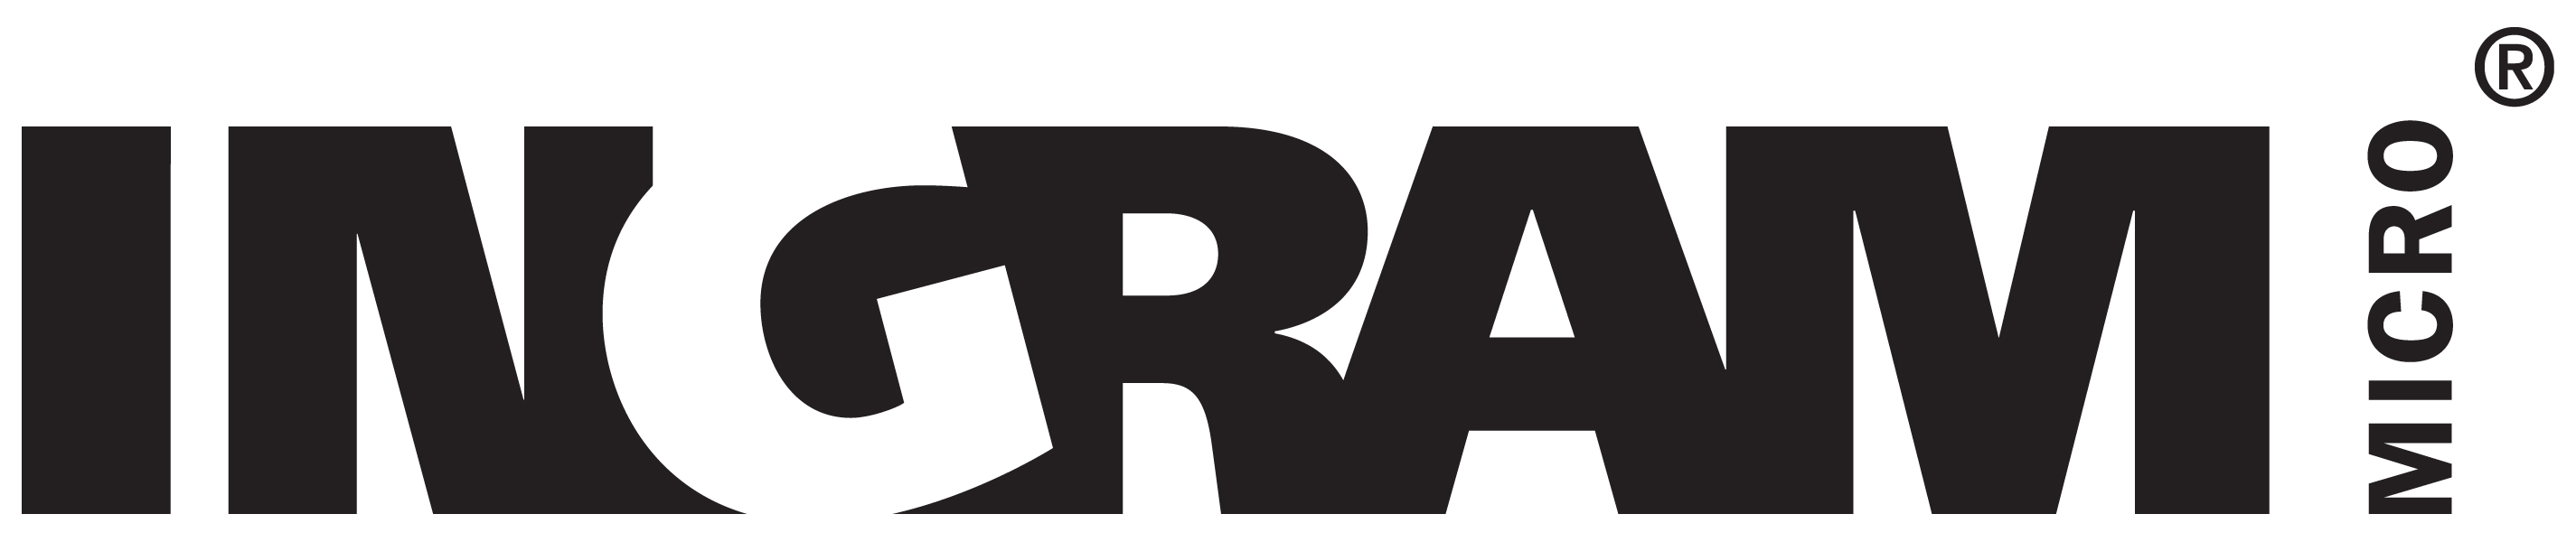 INGRAM_Wordmark®_Black